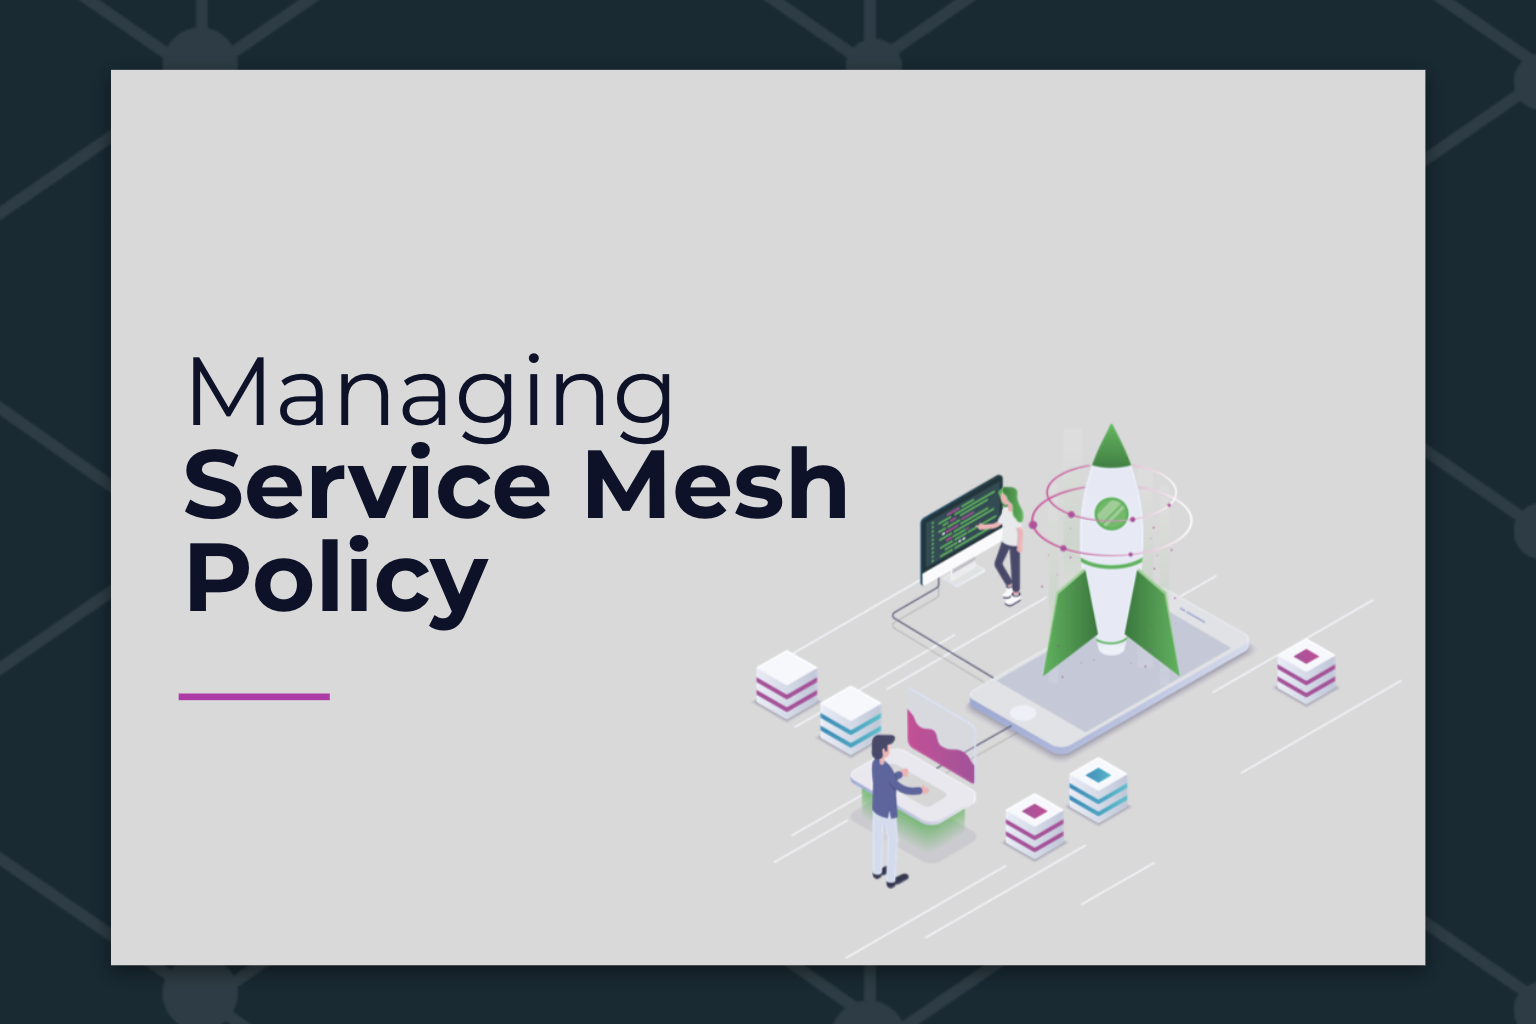 Managing Service Mesh Policy - Aspen Mesh